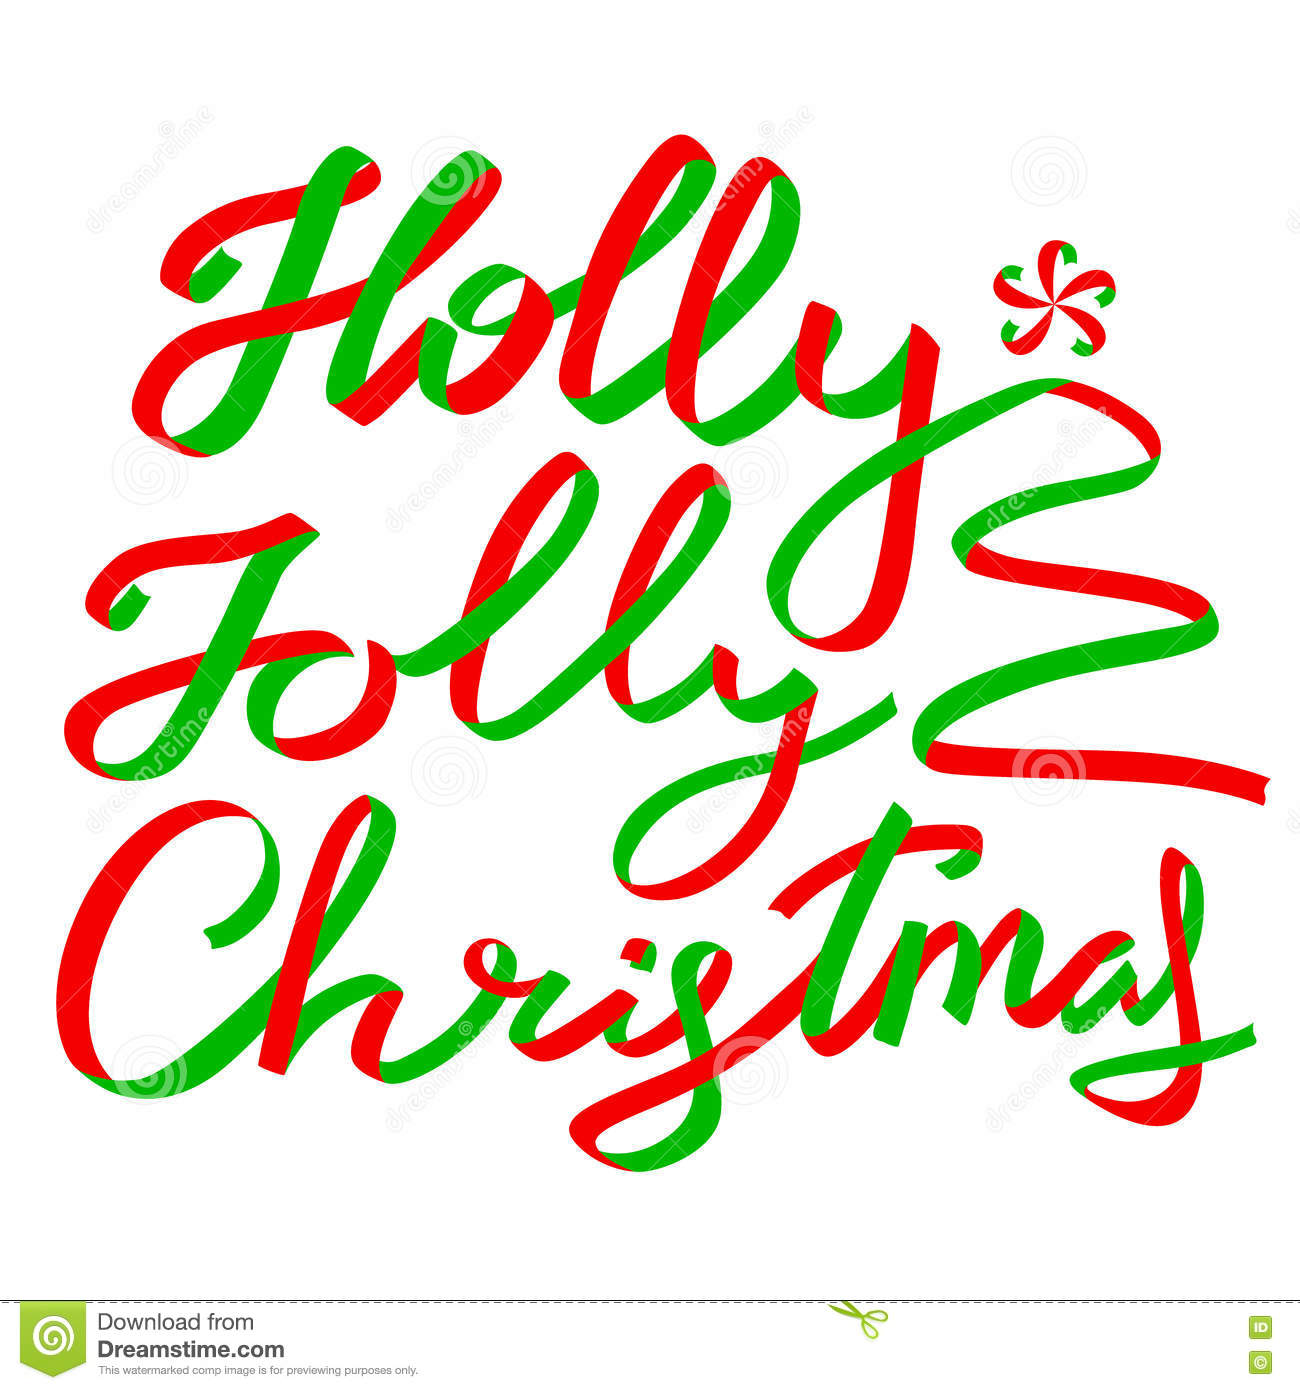 Holly Jolly Christmas Calligraphic Lettering Stock Vector ...